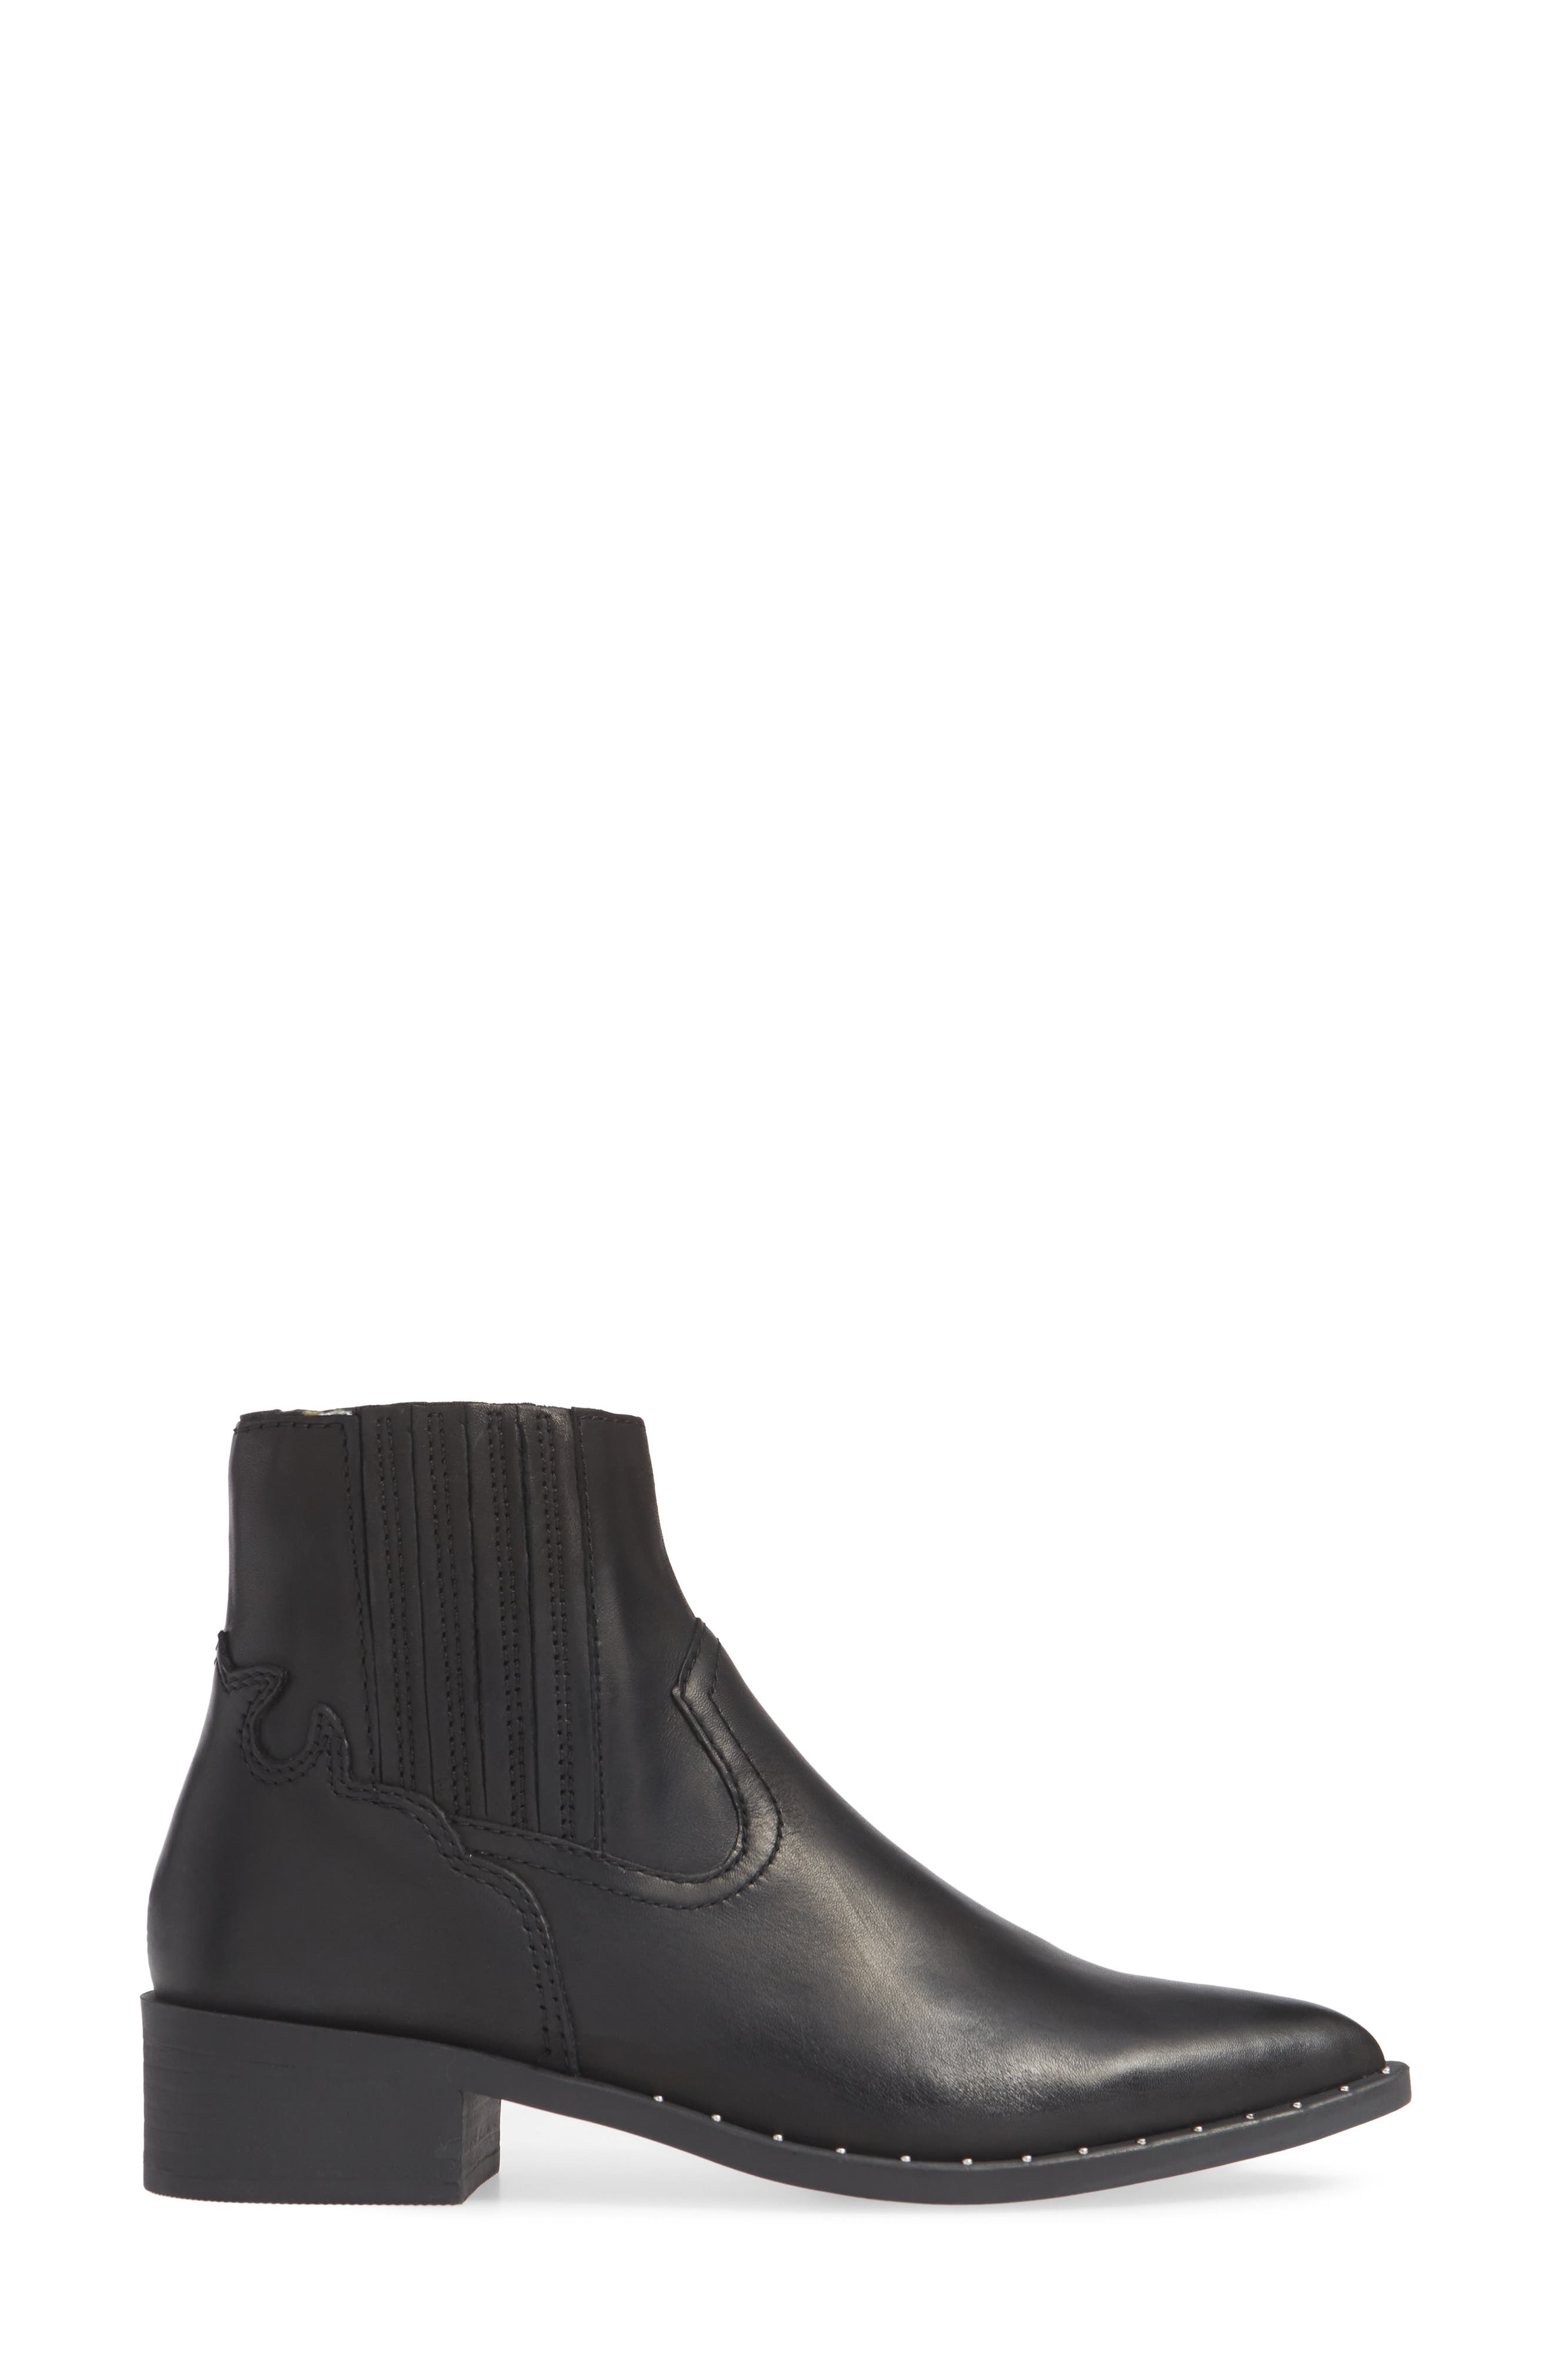 Juke Bootie,                             Alternate thumbnail 3, color,                             BLACK LEATHER